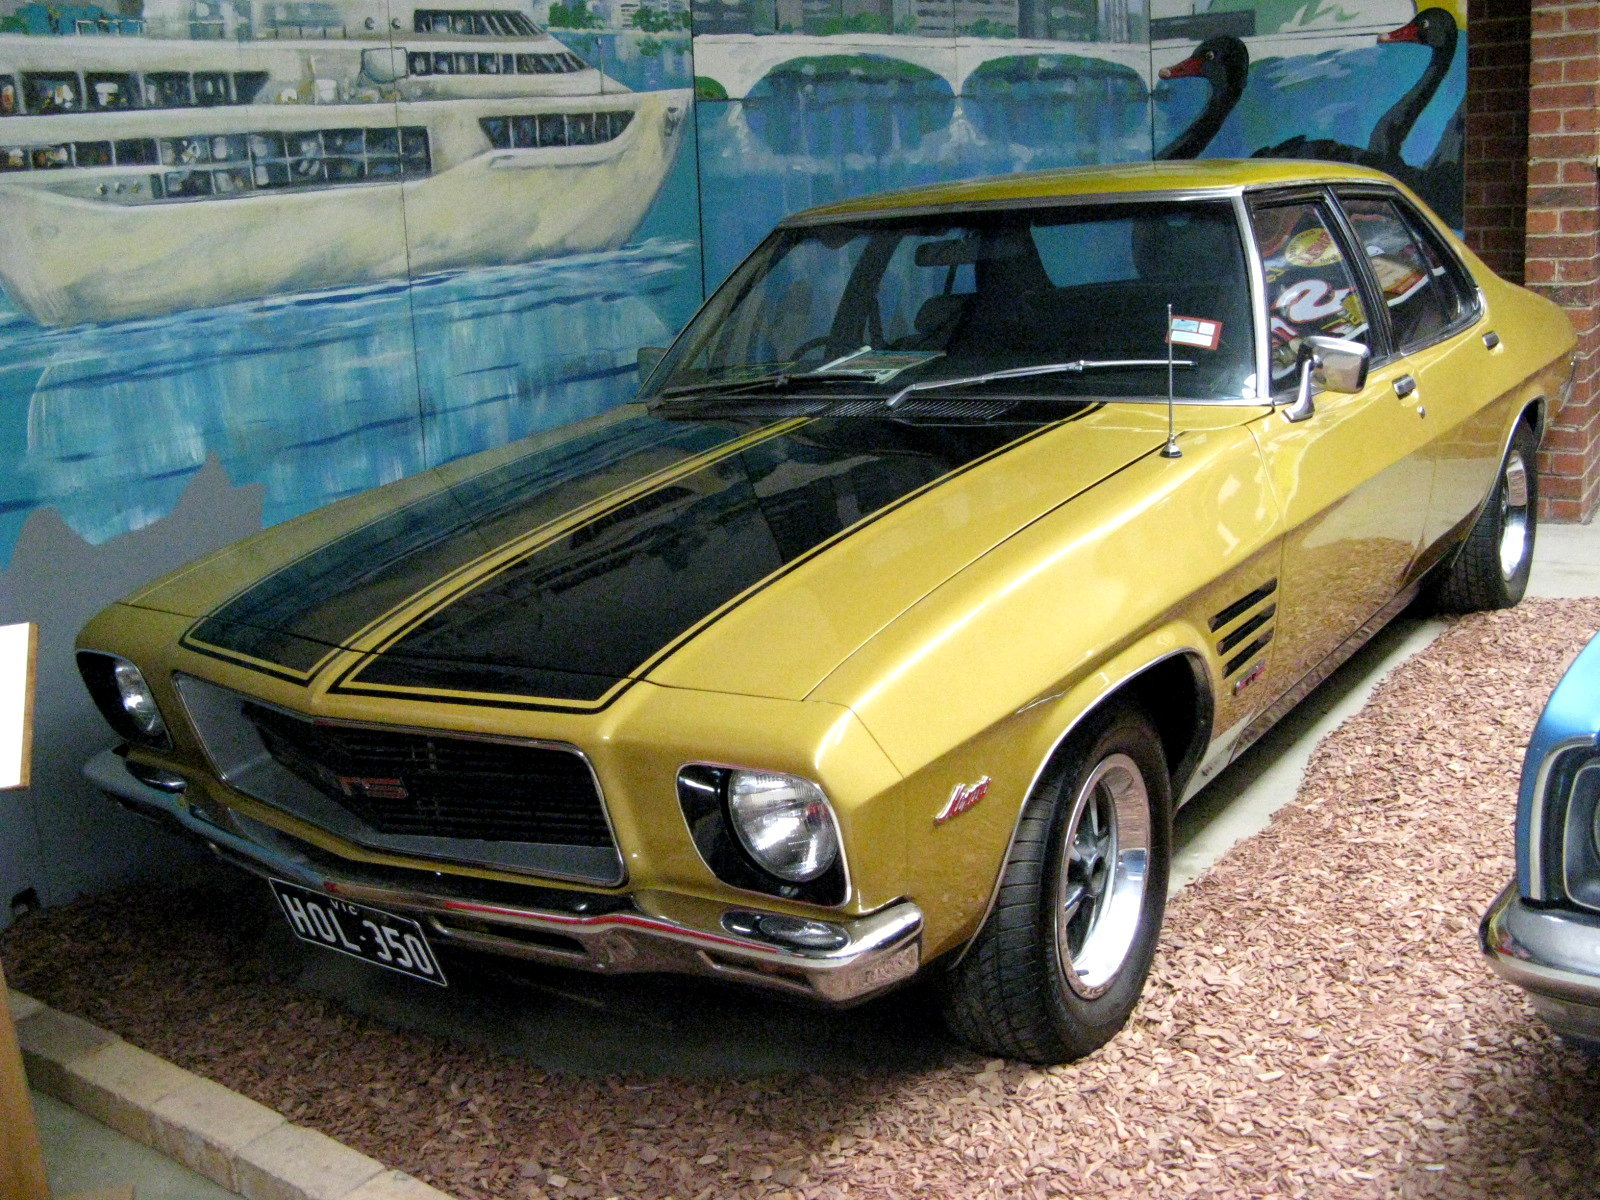 Holden Monaro GTS My Dad had the Monaro, as his first car out of the